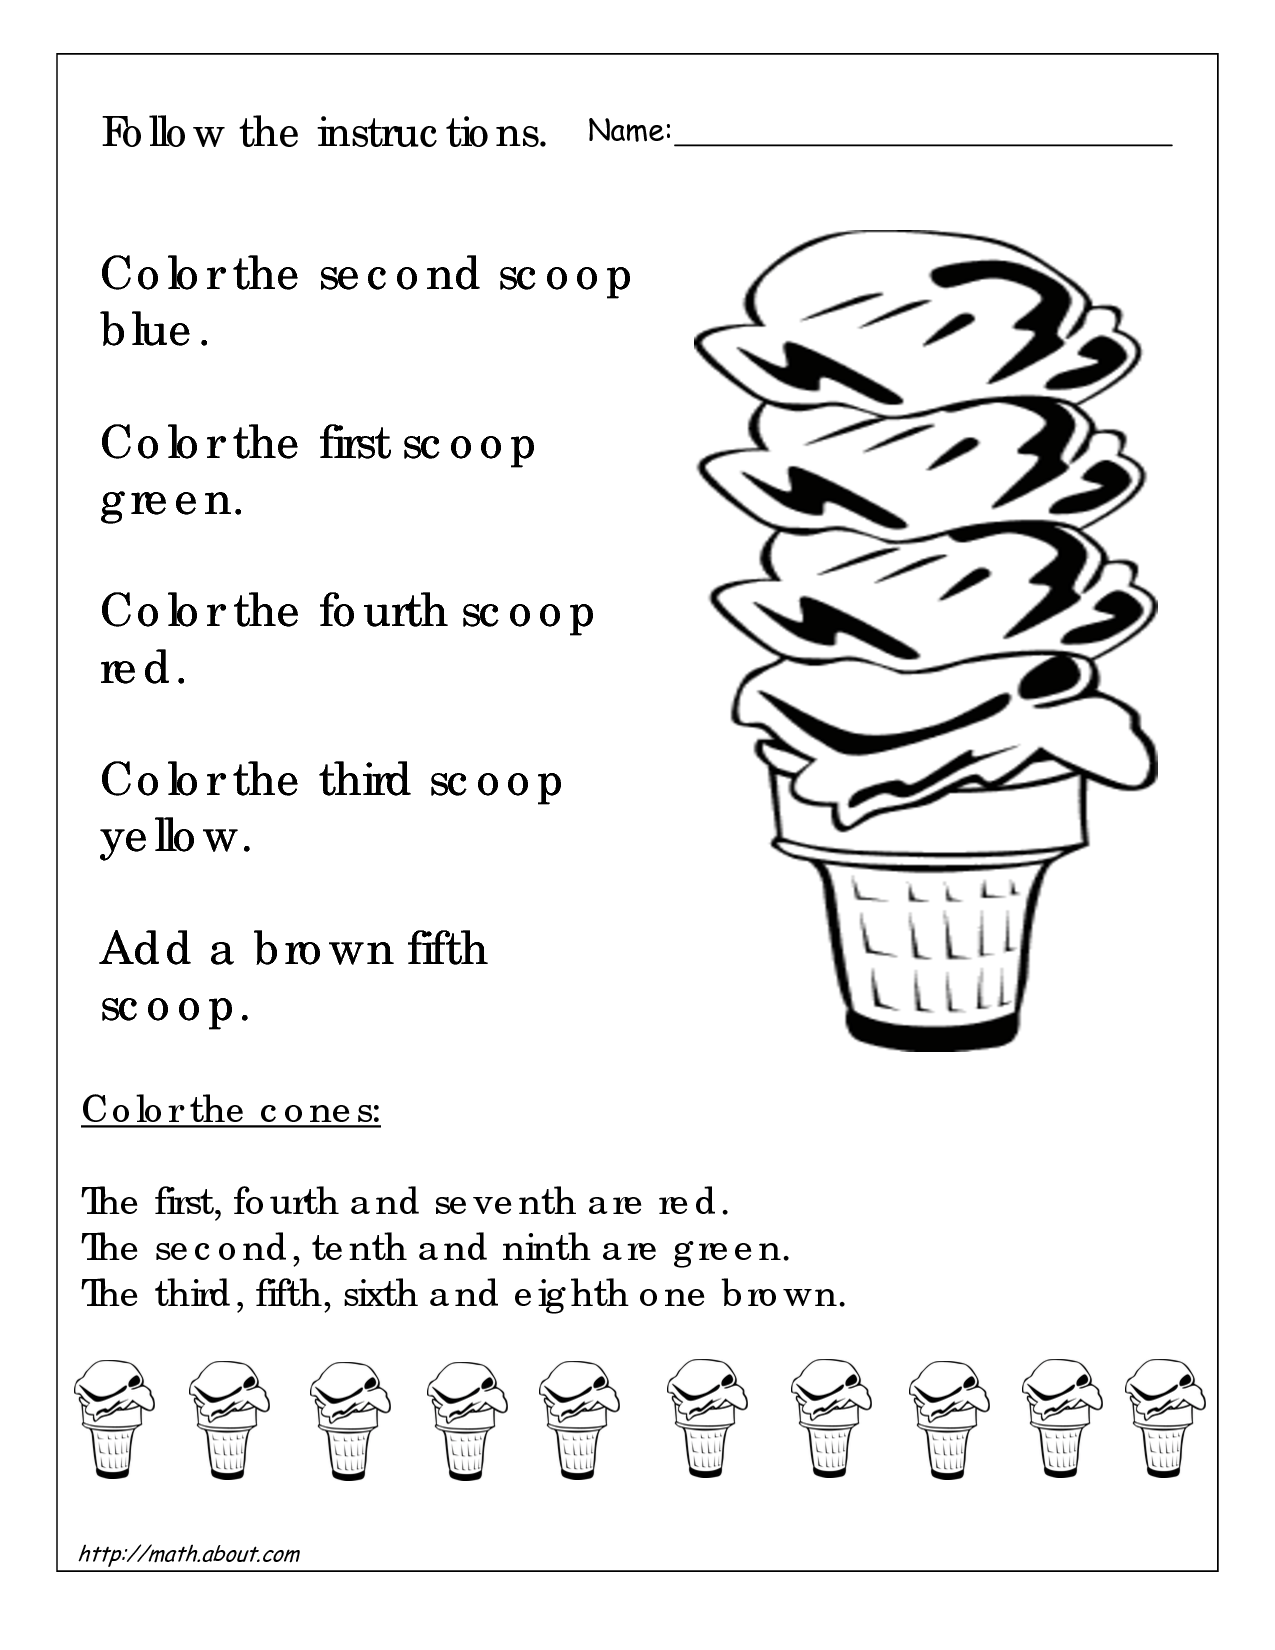 Worksheet Activities For 1st Graders 17 best images about math papers on pinterest christmas worksheets first grade and student